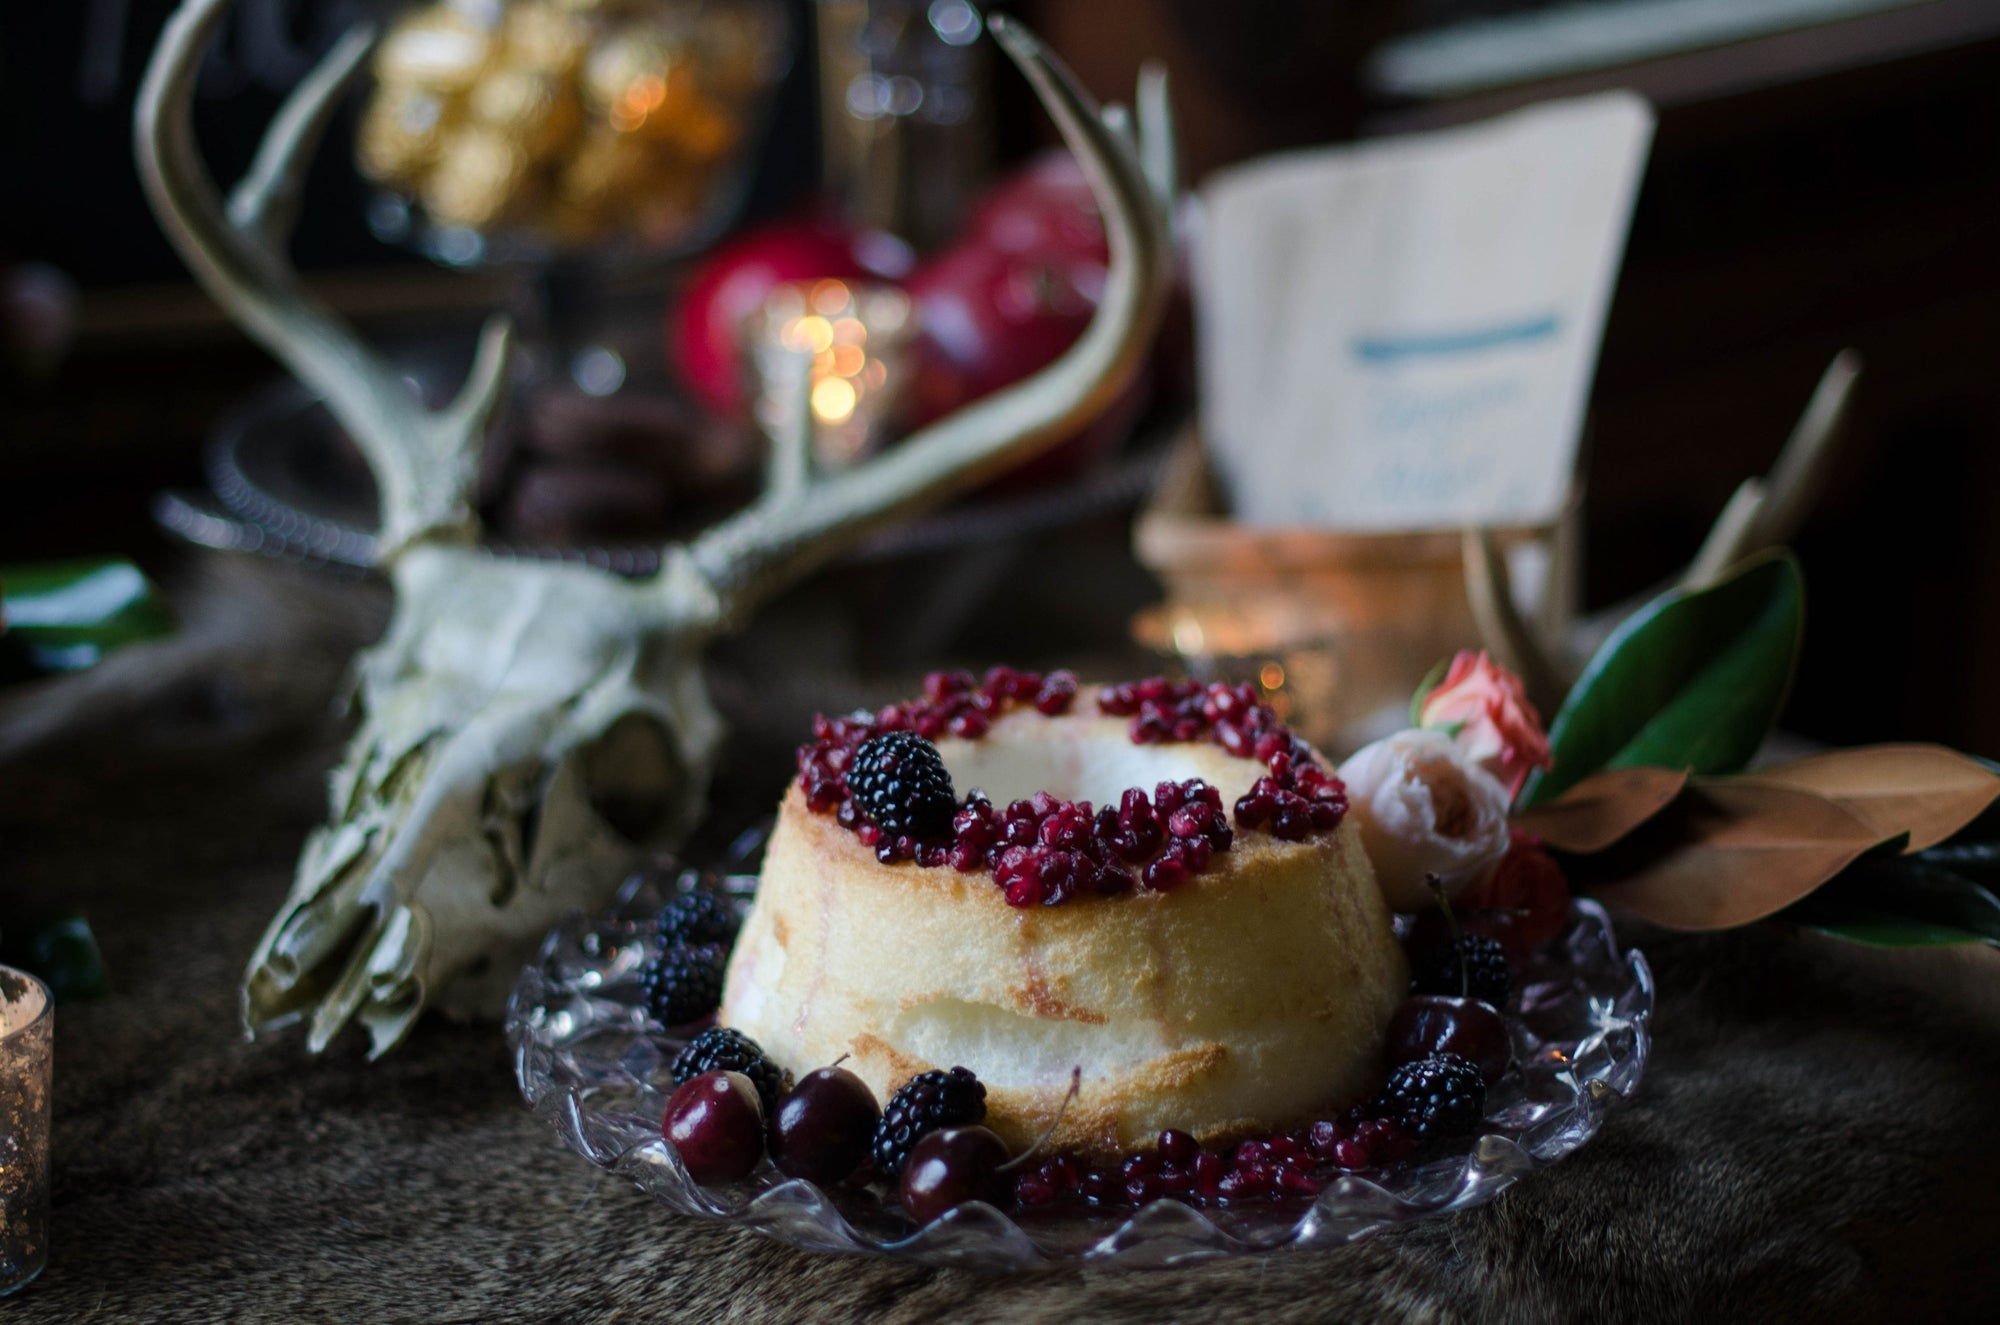 This rustic berry angel food cake from a woodland inspired wedding looks glamorous on the dessert table with a taxidermy stag skull